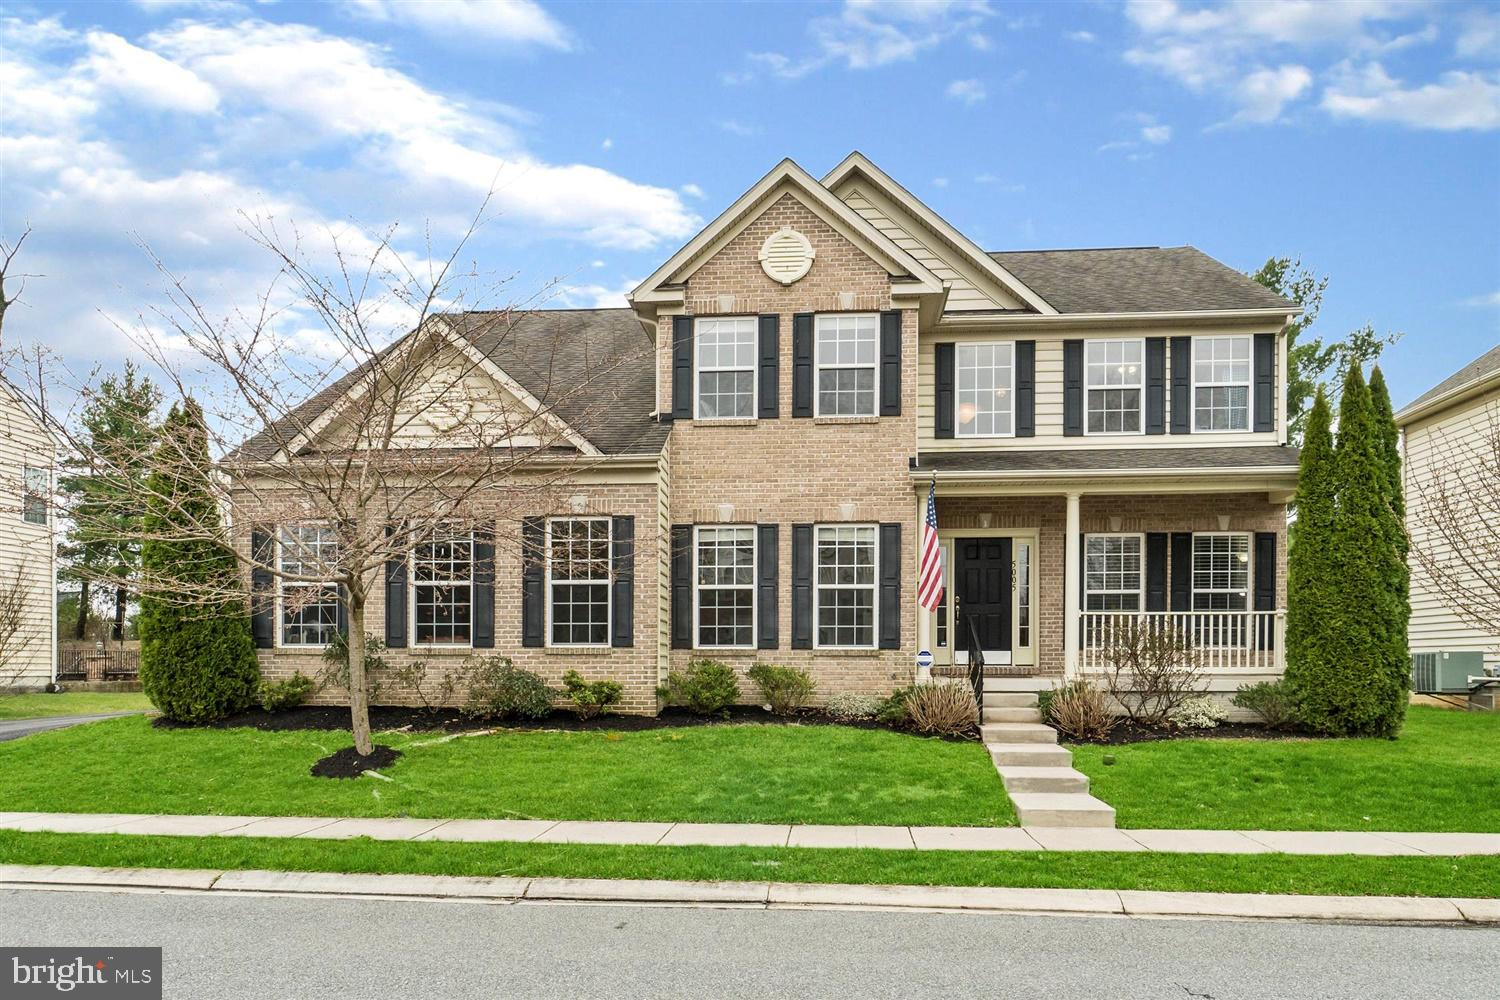 5005 KANELY COURT, PERRY HALL, MD 21128